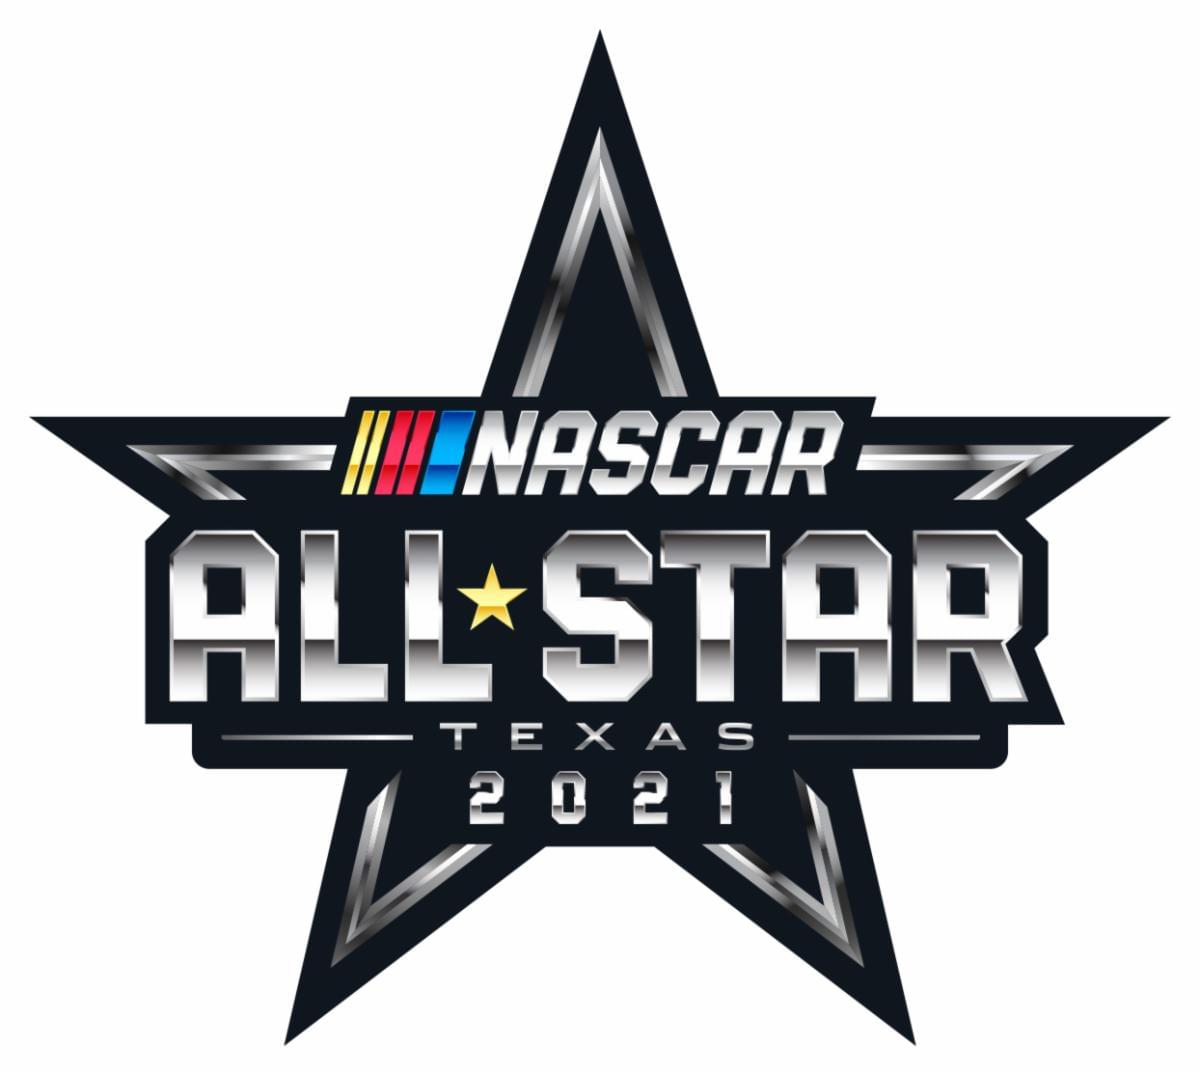 NASCAR's All-Star Race Is Coming To Texas Motor Speedway To Highlight Their 25th Season!